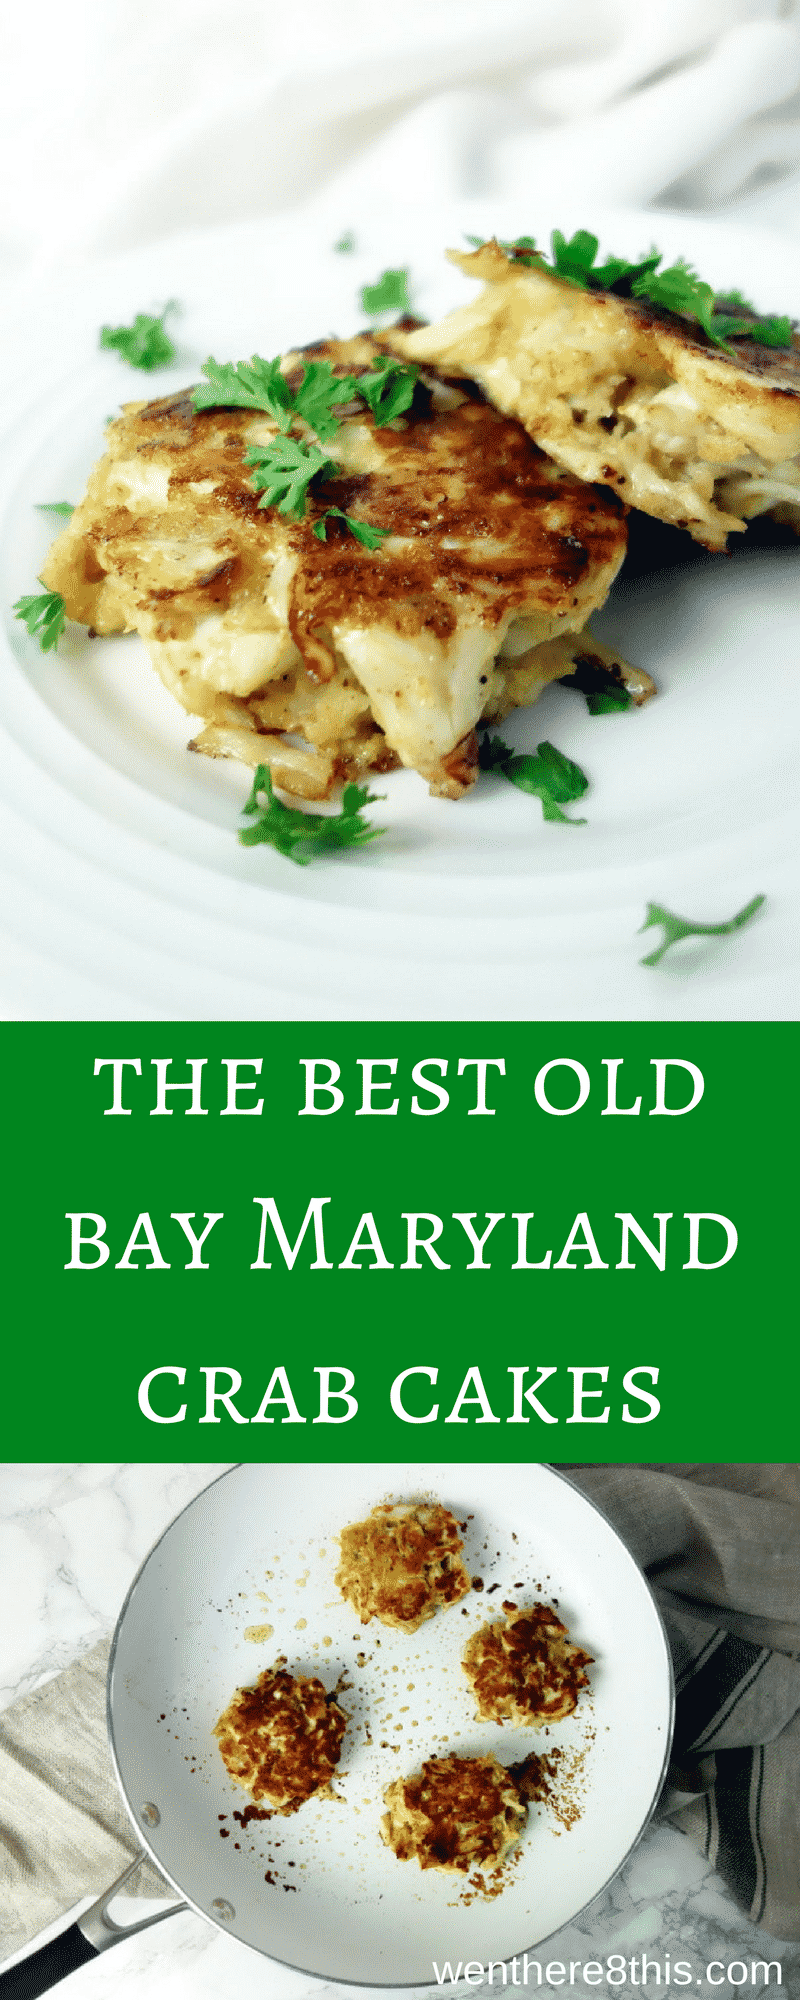 These Old Bay Maryland Crab Cakes are made with big chunks of lump crab, a healthy amount of Old Bay seasoning, and fried in butter - YUM!easy crab cakes | lump crab cakes | crab recipes | crab and butter | old bay crab | Maryland crab cakes | jumbo lump crab cakes | best crab cakes | southern crab cakes | east coast crab cakes | seafood recipes